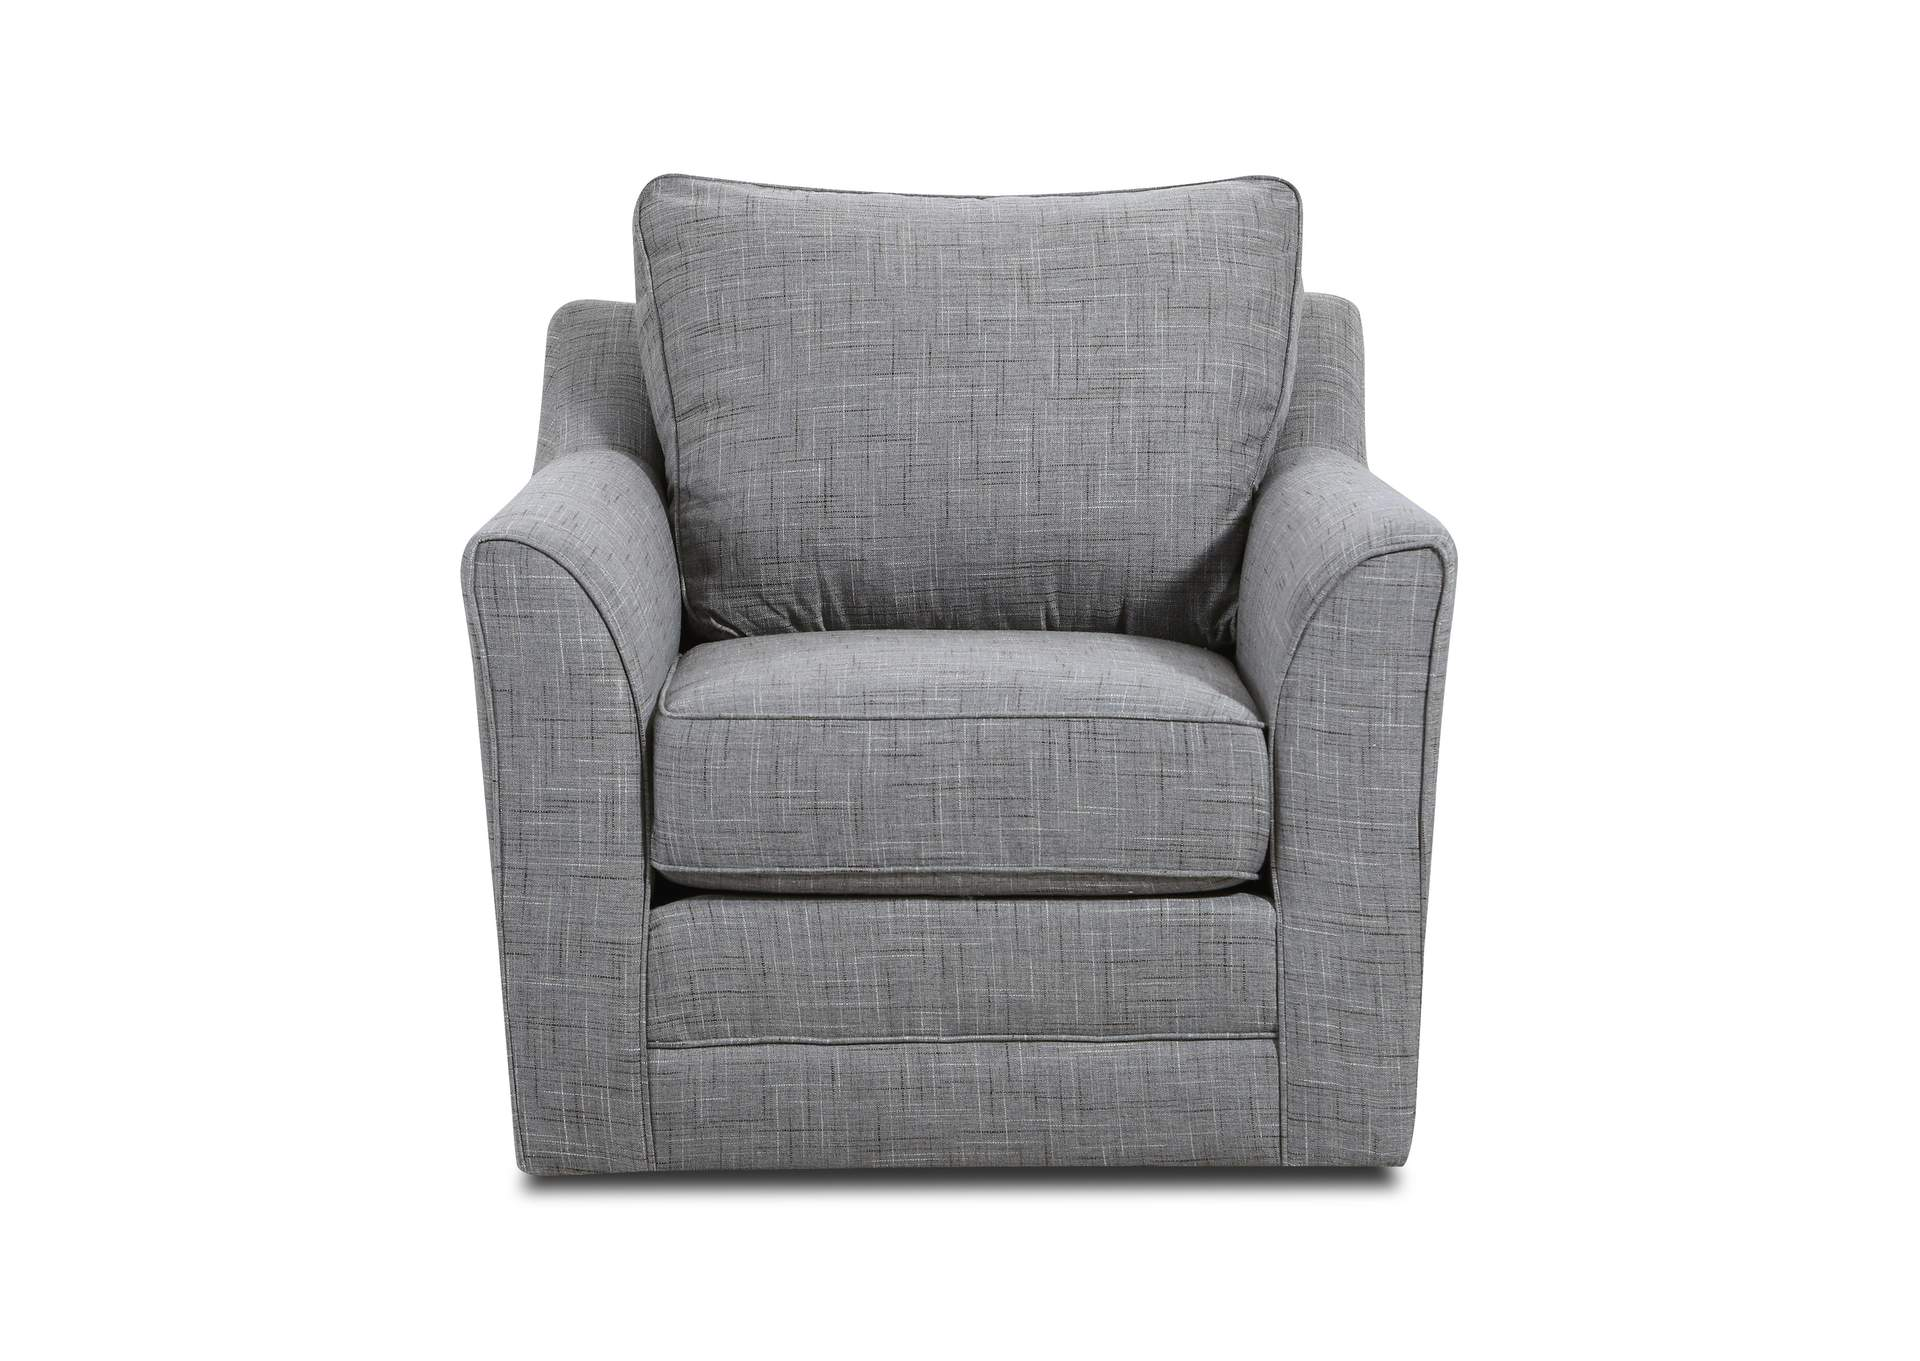 2013 Ferrin Swivel Accent Chair